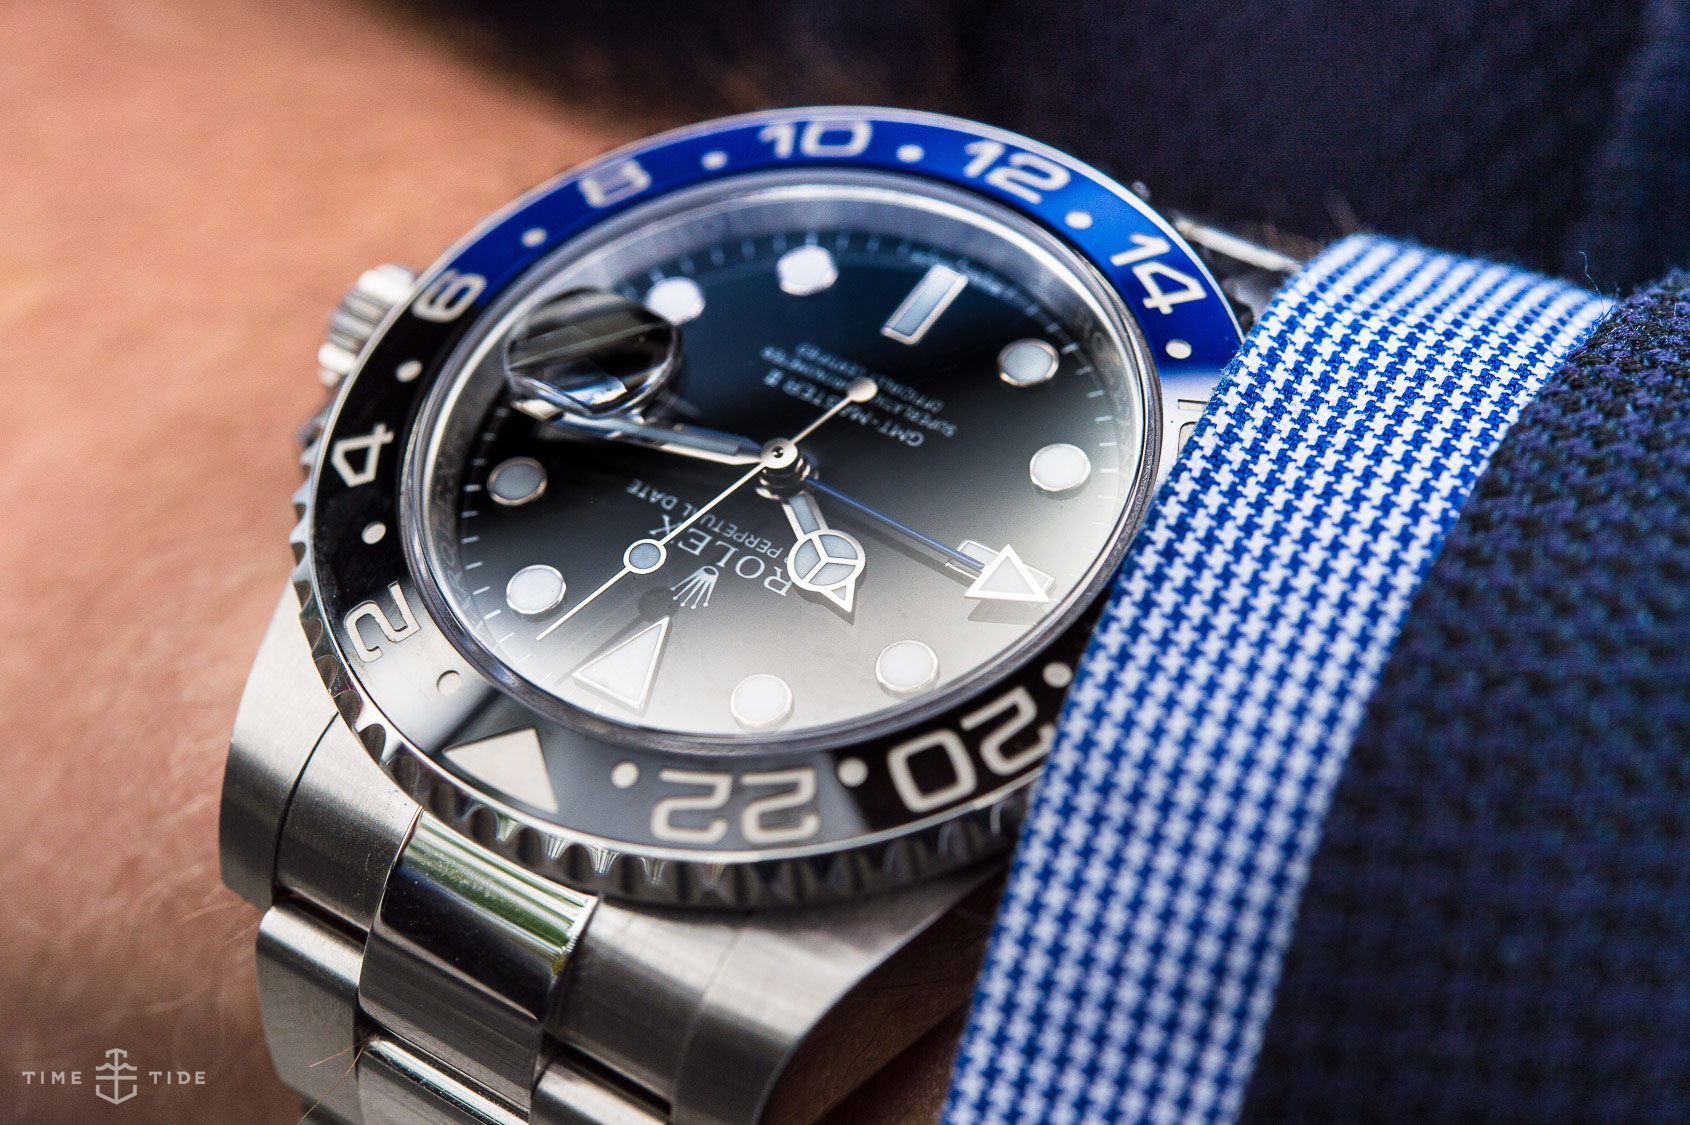 Second Hand Rolex Watches >> IN-DEPTH REVIEW: The Rolex GMT Master II BLNR review